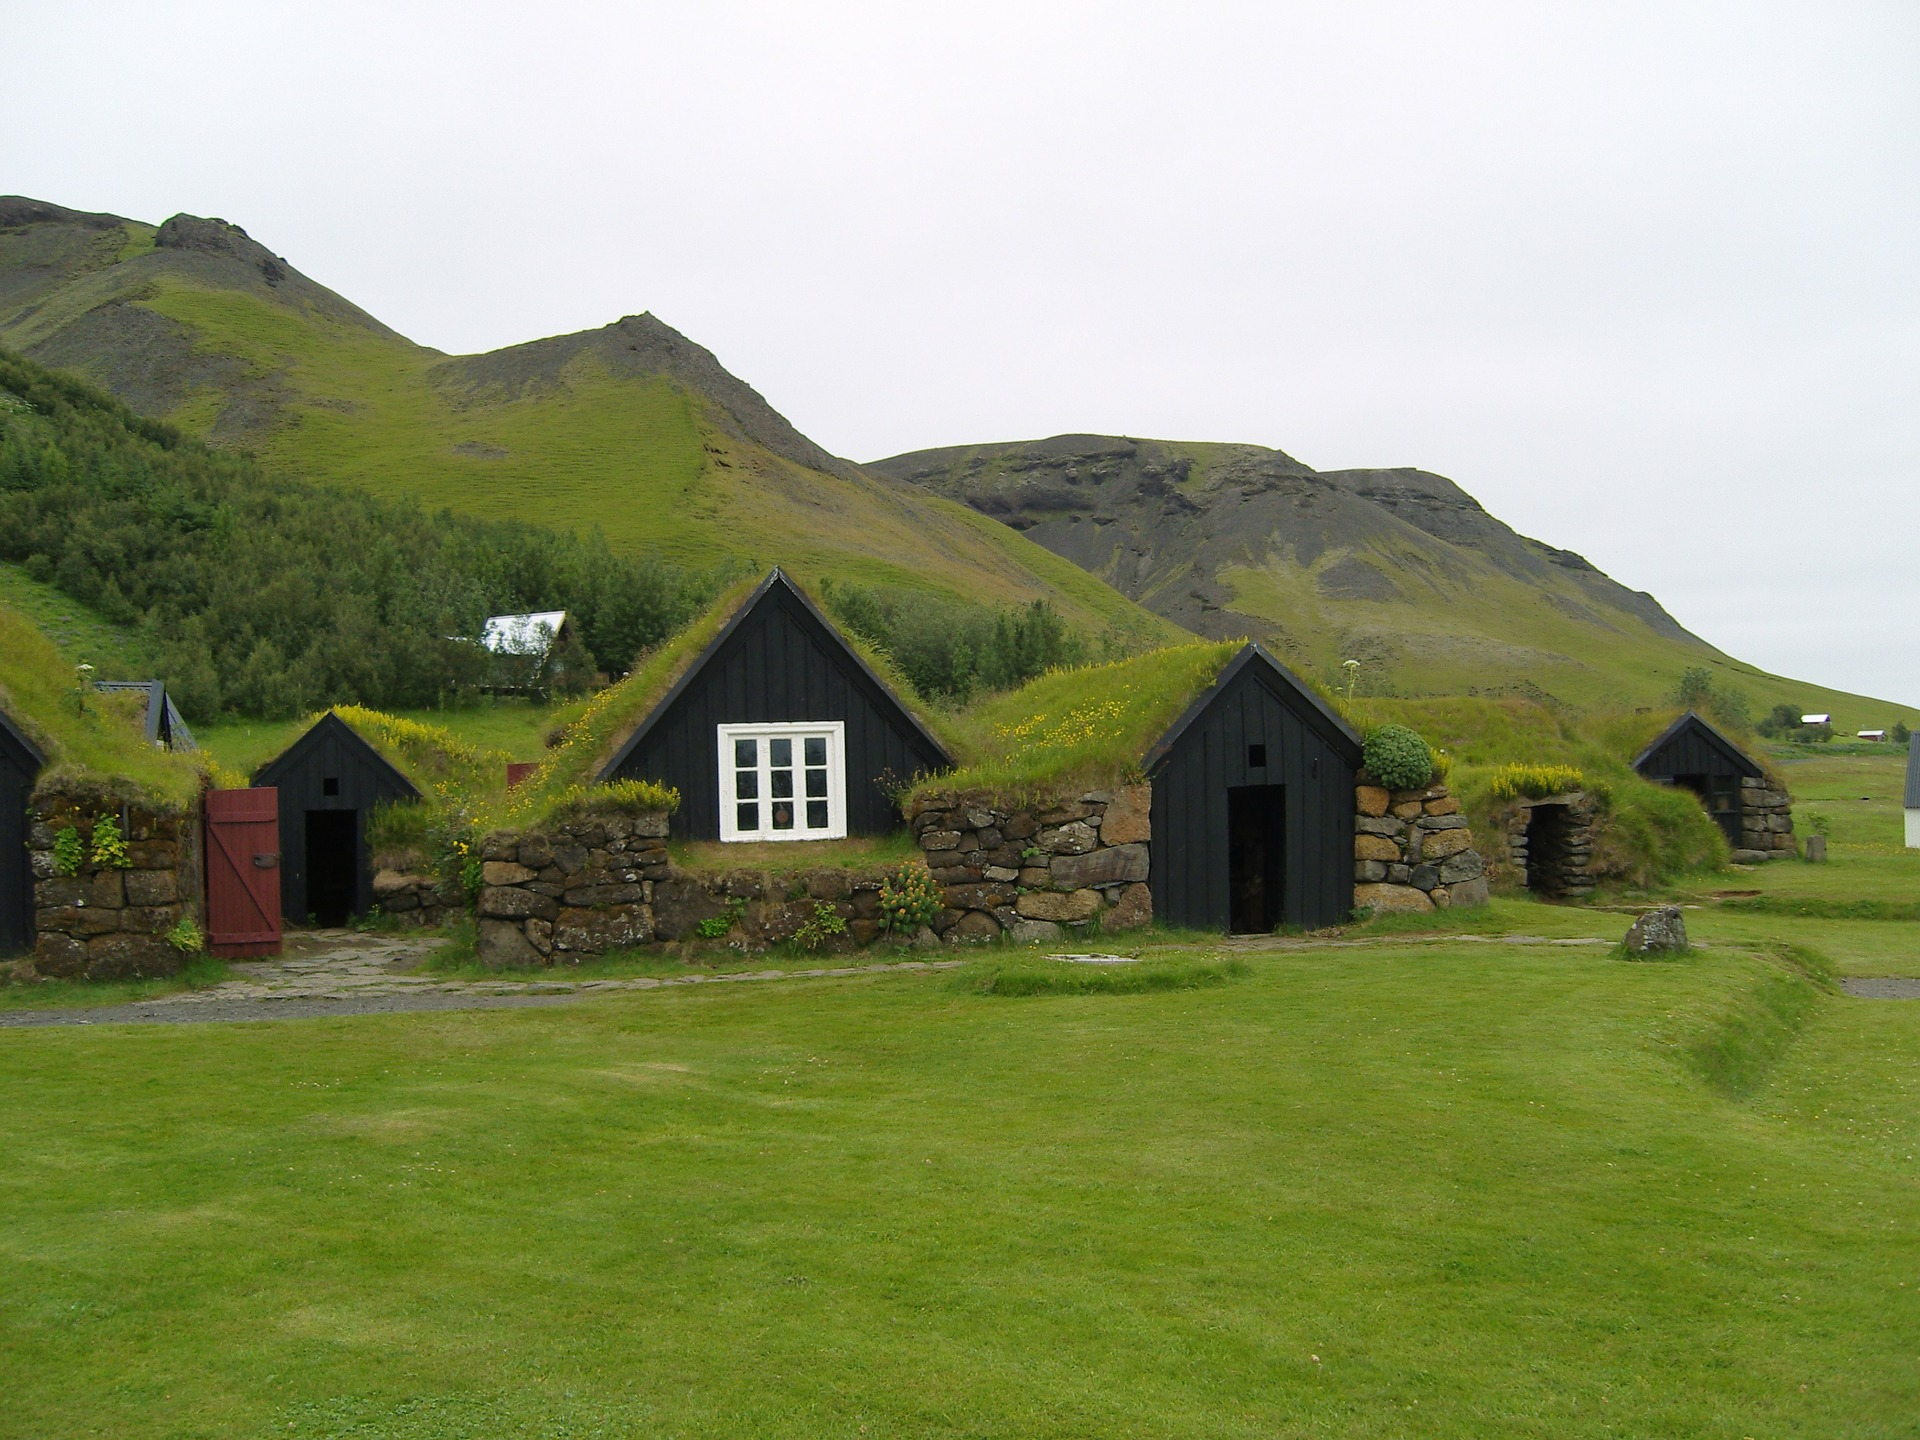 Private detectives and investigators in Iceland